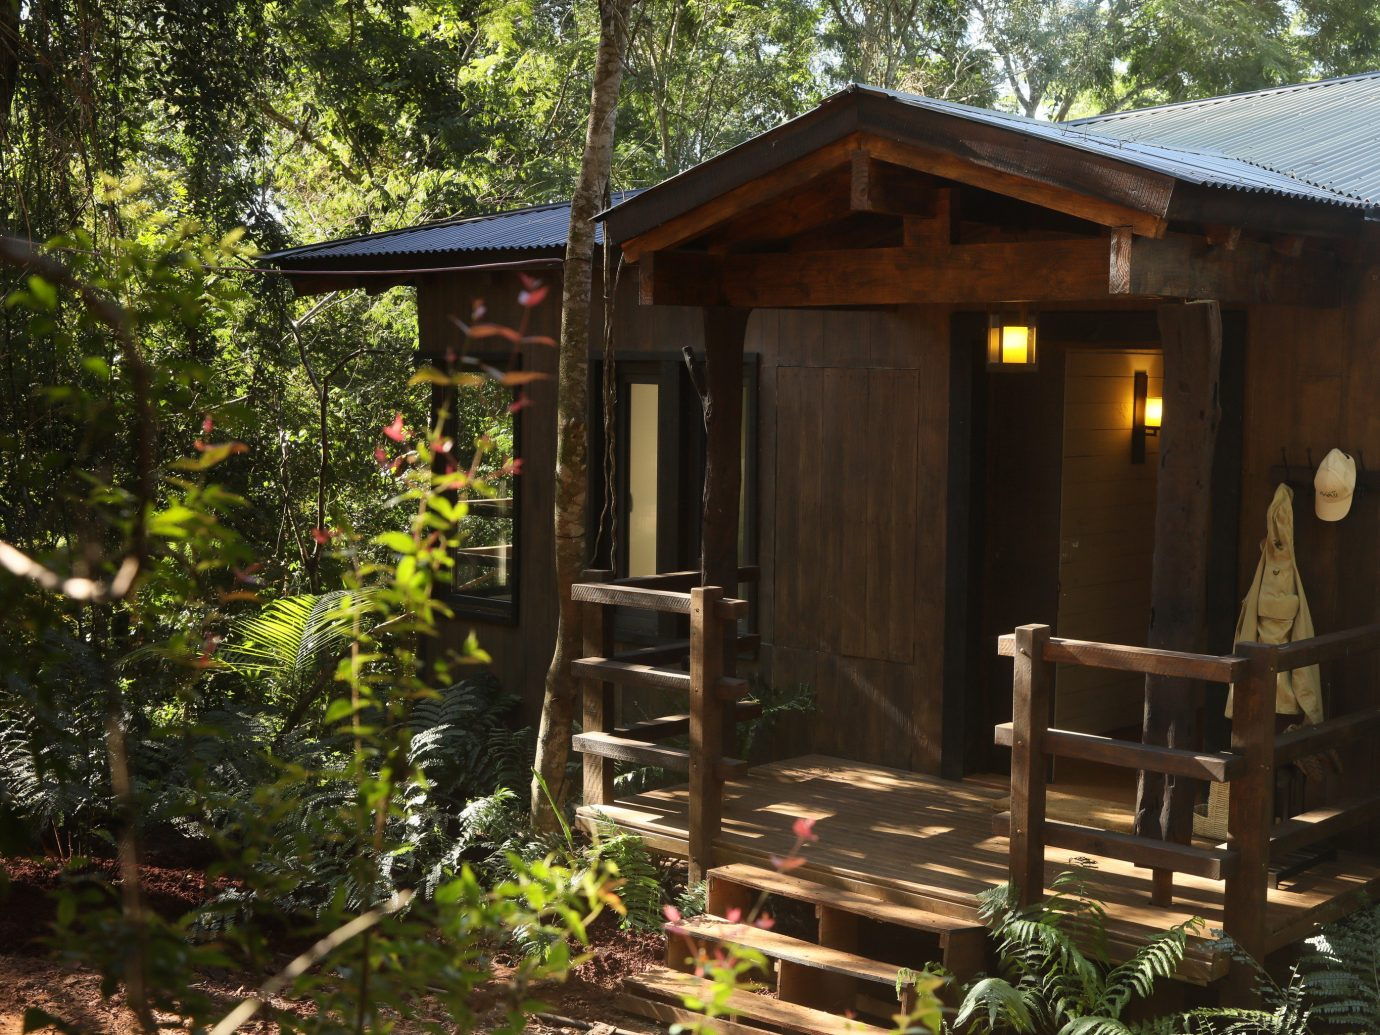 Hotels Outdoors + Adventure tree outdoor building cottage log cabin house shed hut home shack outdoor structure plant real estate backyard landscape porch Garden